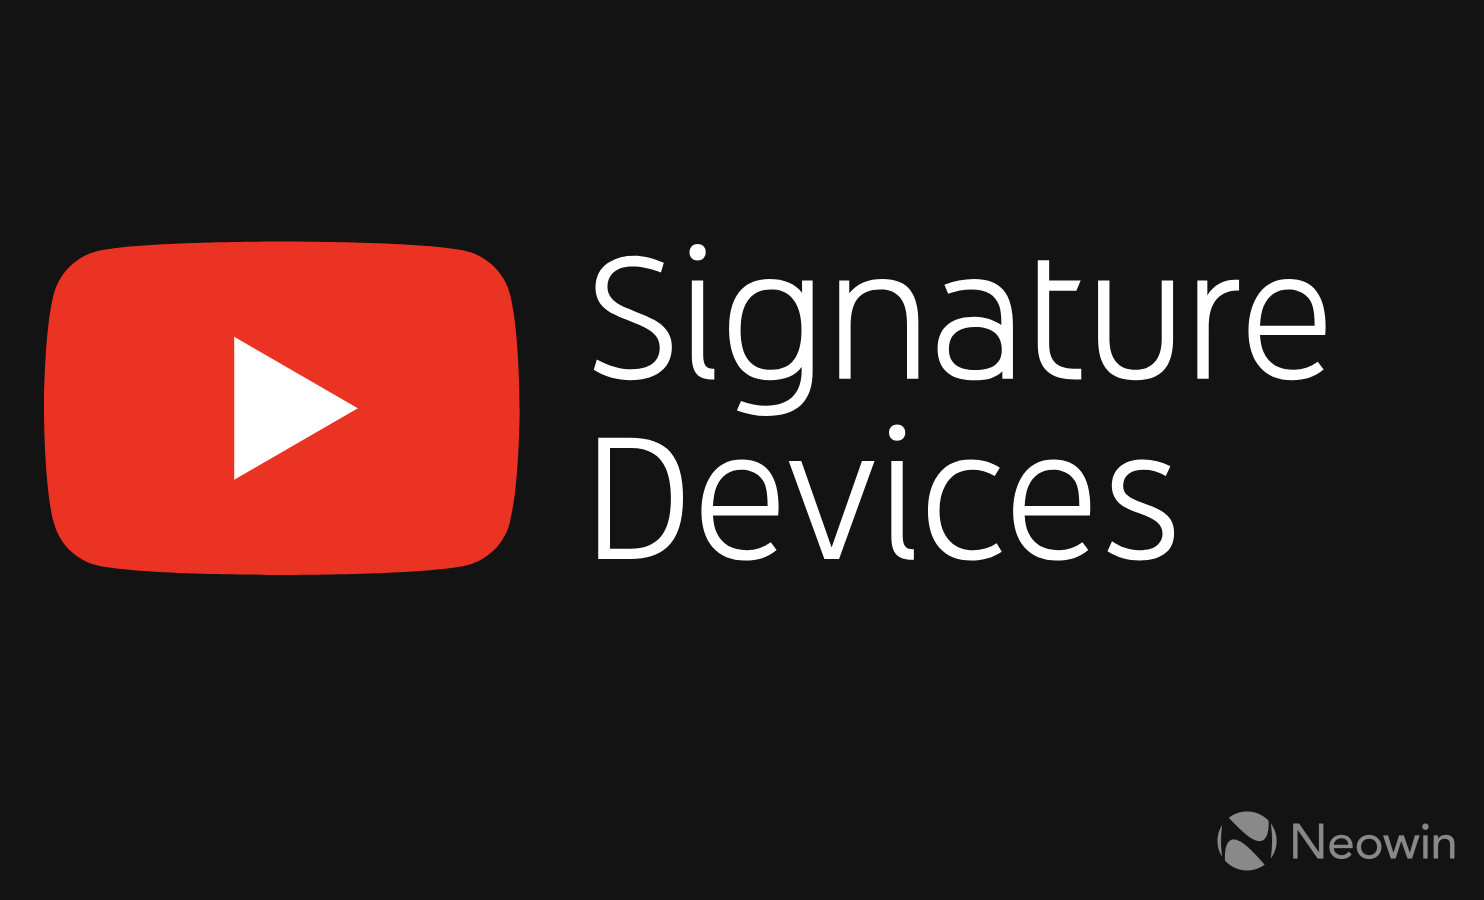 YouTube begins certifying 'Signature Devices' with the best YouTube viewing experience